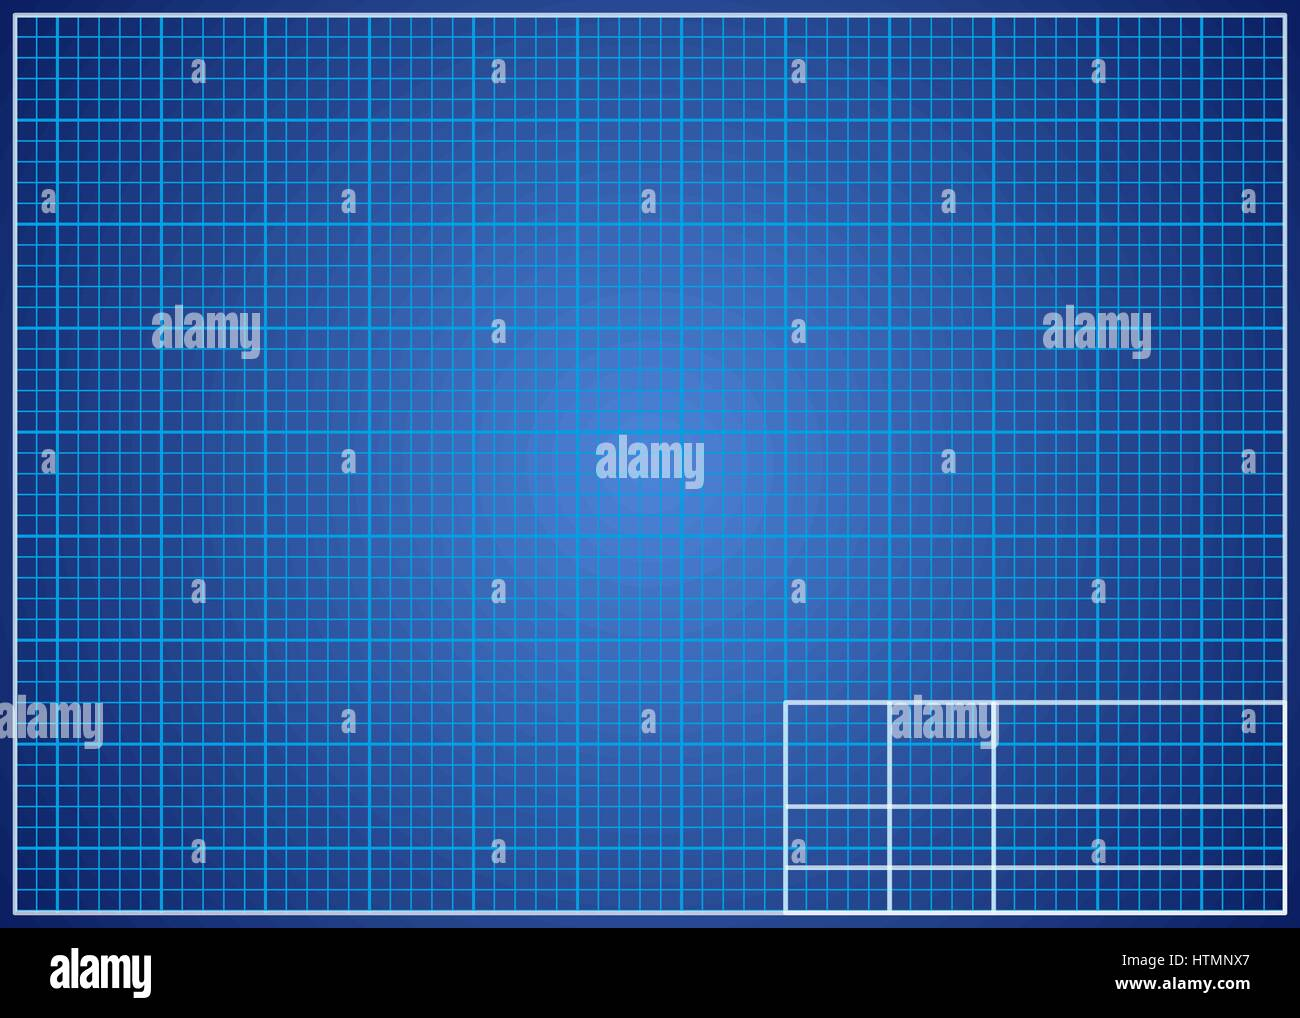 Blueprint background stock vector images alamy blueprint background technical design paper stock vector malvernweather Image collections